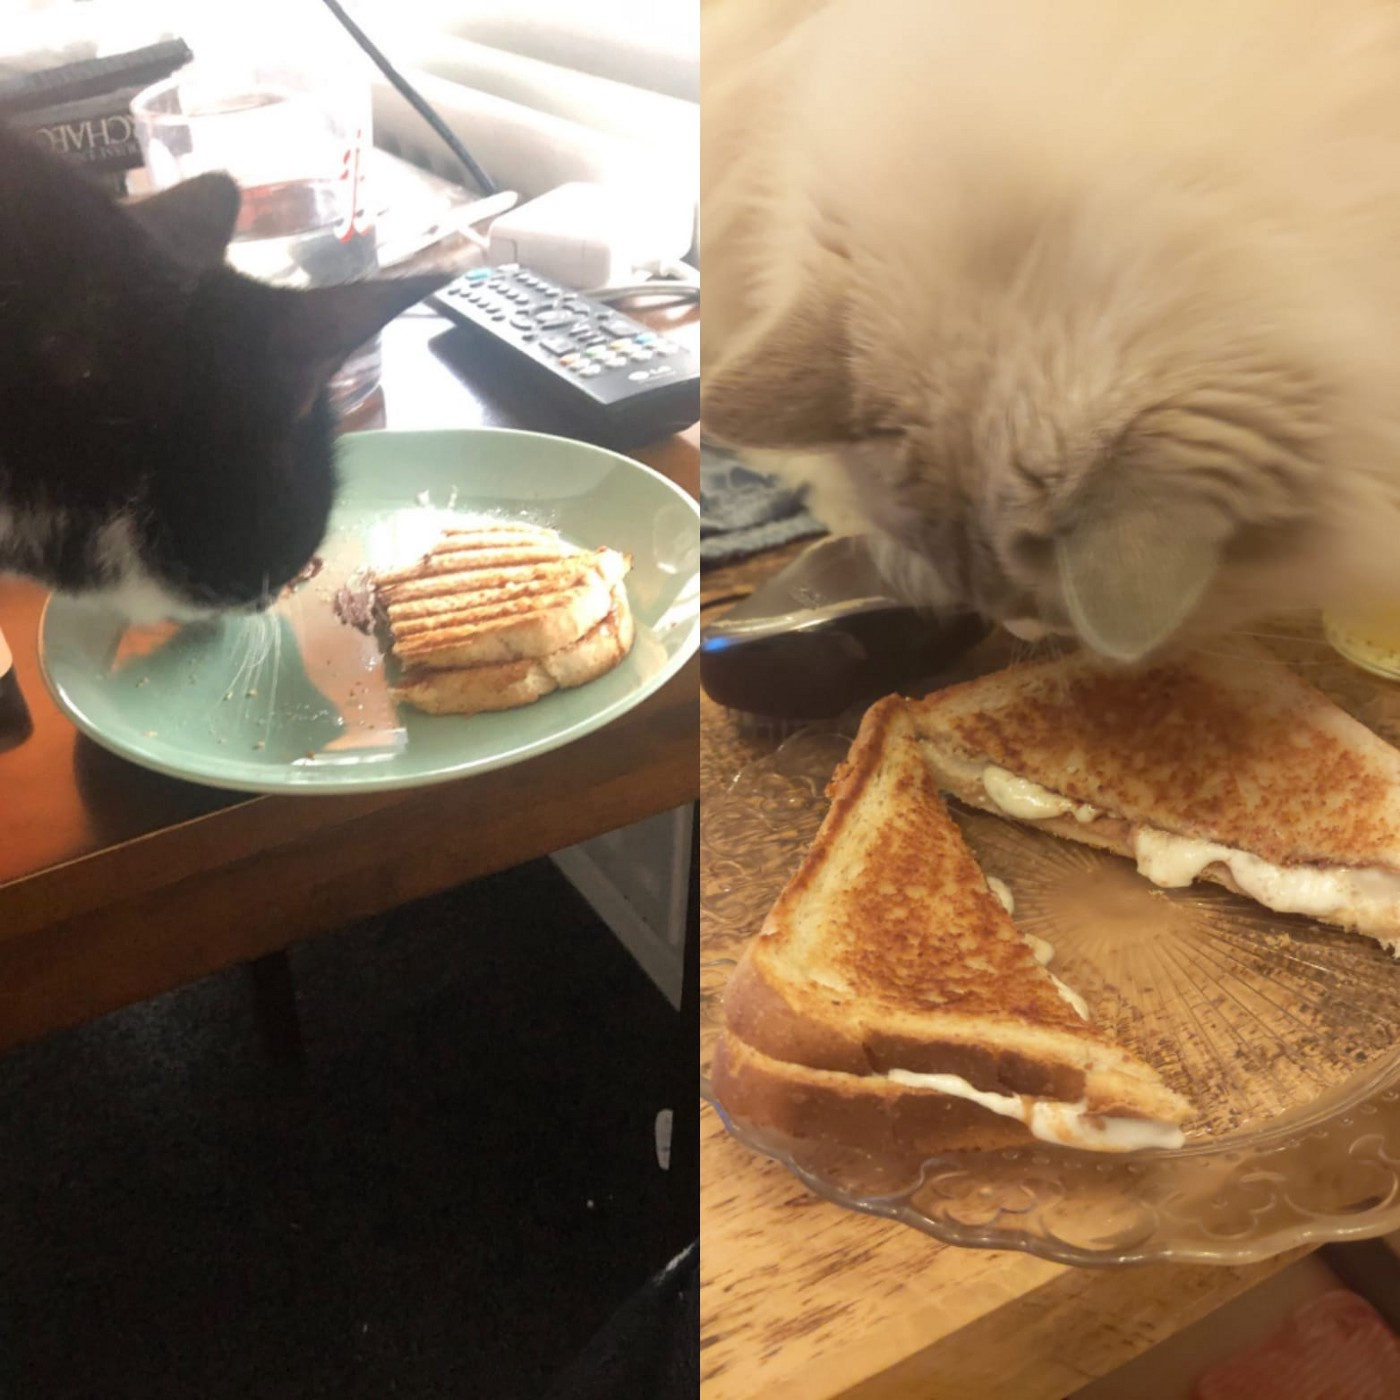 Two images side by side. Each image shows a cat smelling a toasted sandwich with a filling of marshmallow and chocolate.